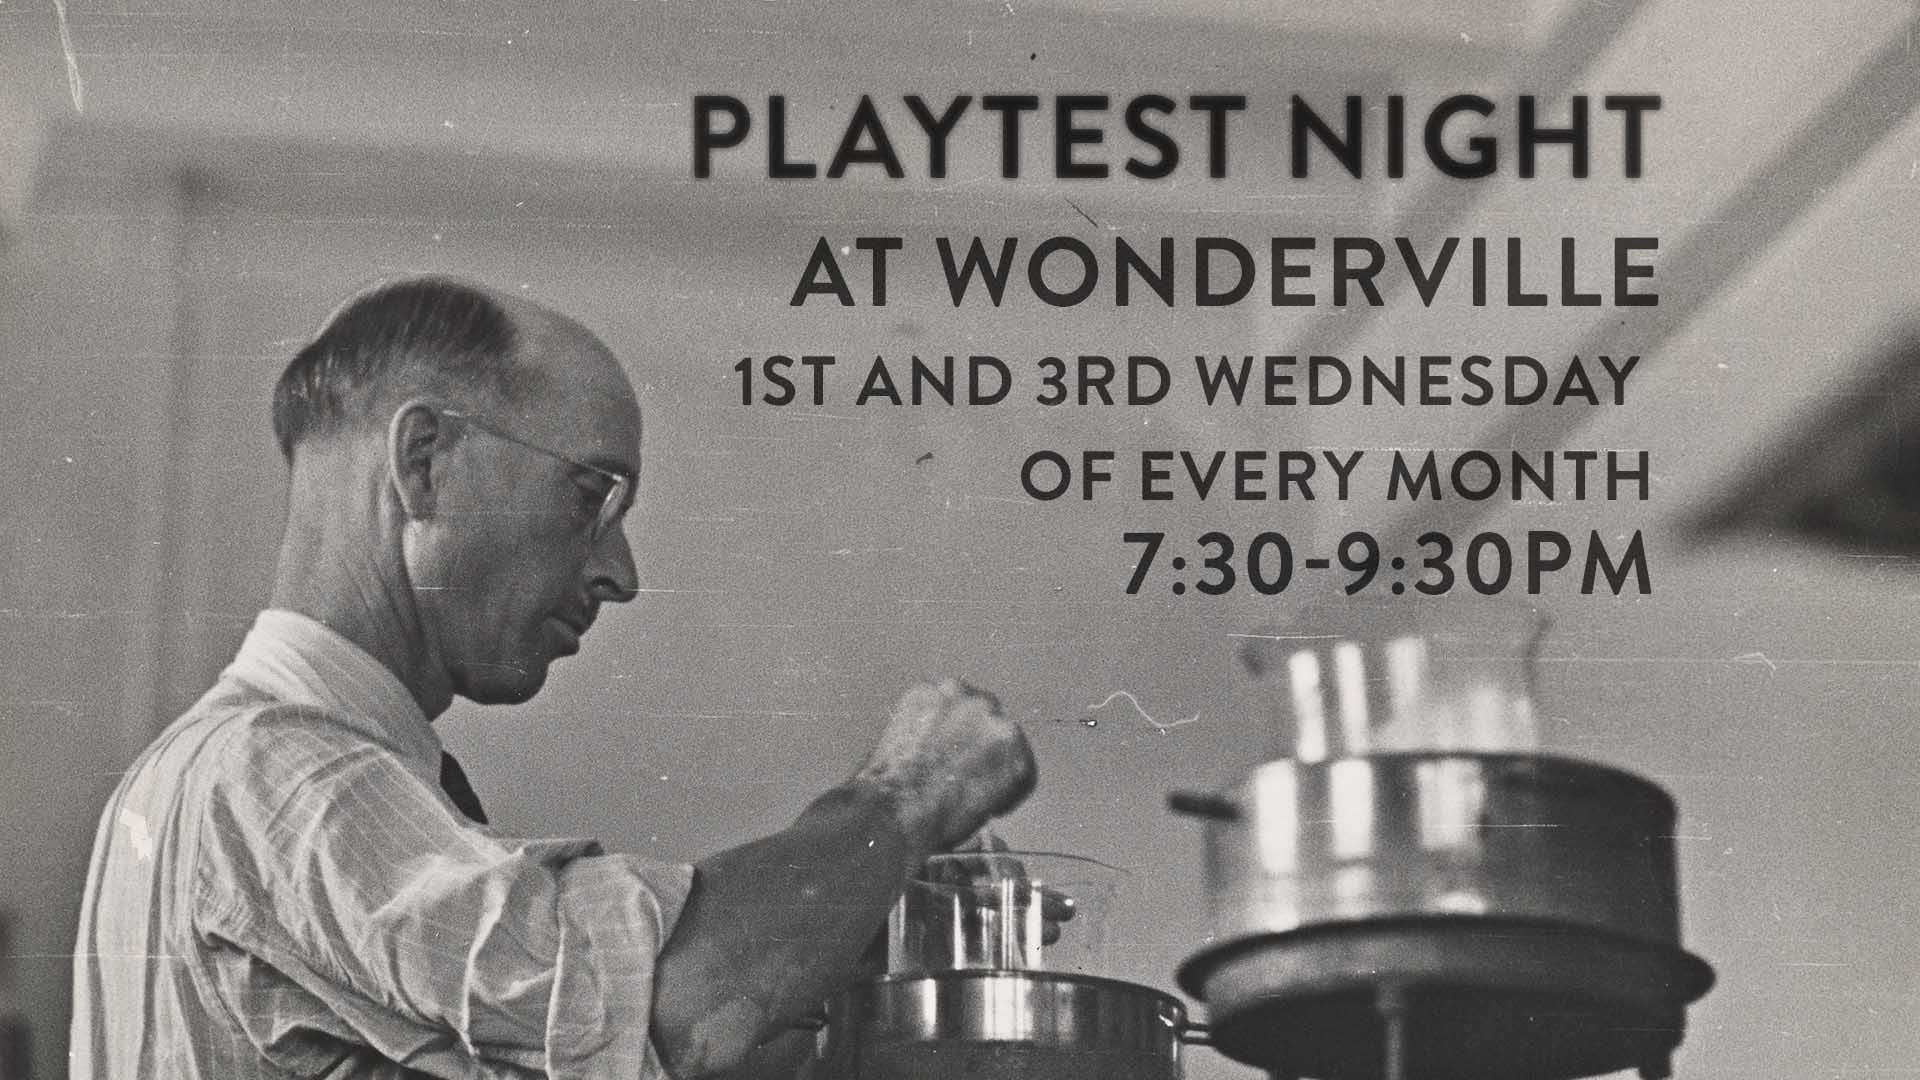 Playtest night is held on the 1st and 3rd Wednesday of every month at 7:30 at Wonderville  RSVP:  https://withfriends.co/Event/2258051/Playtest_Night